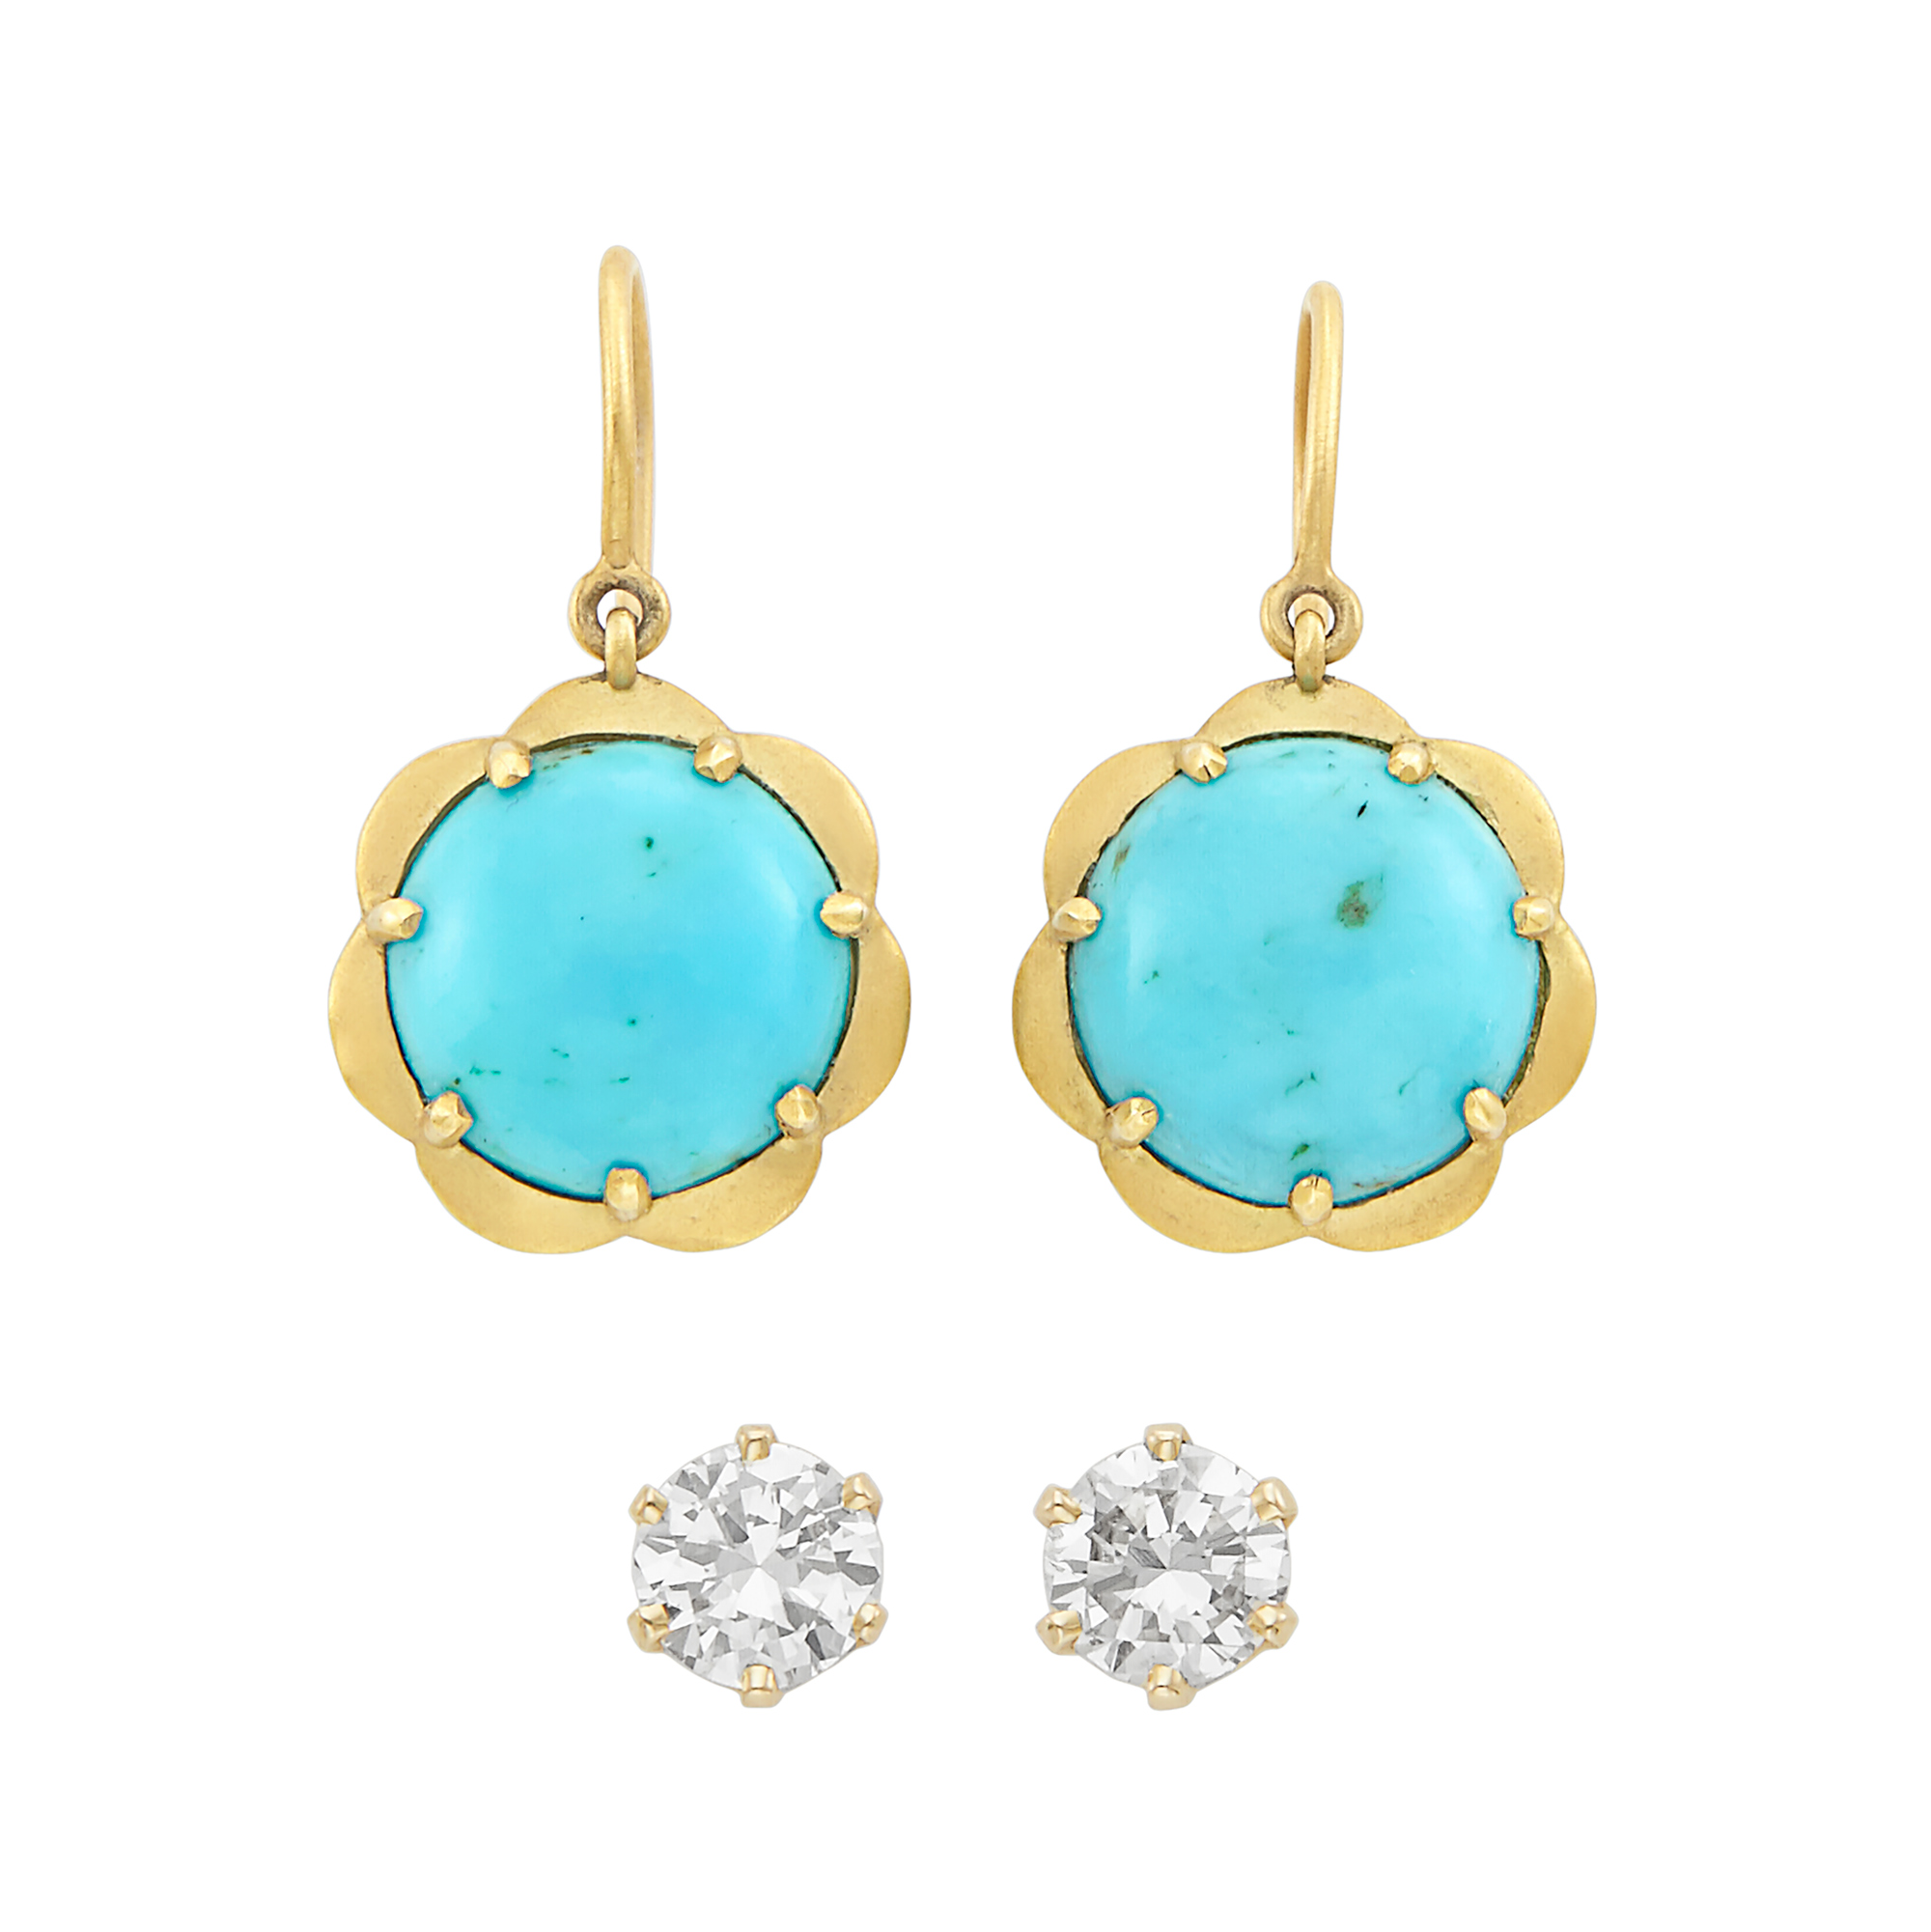 Lot image - Pair of Gold and Turquoise Pendant-Earrings, by Jamie Wolf, and Gold and Diamond Stud Earrings